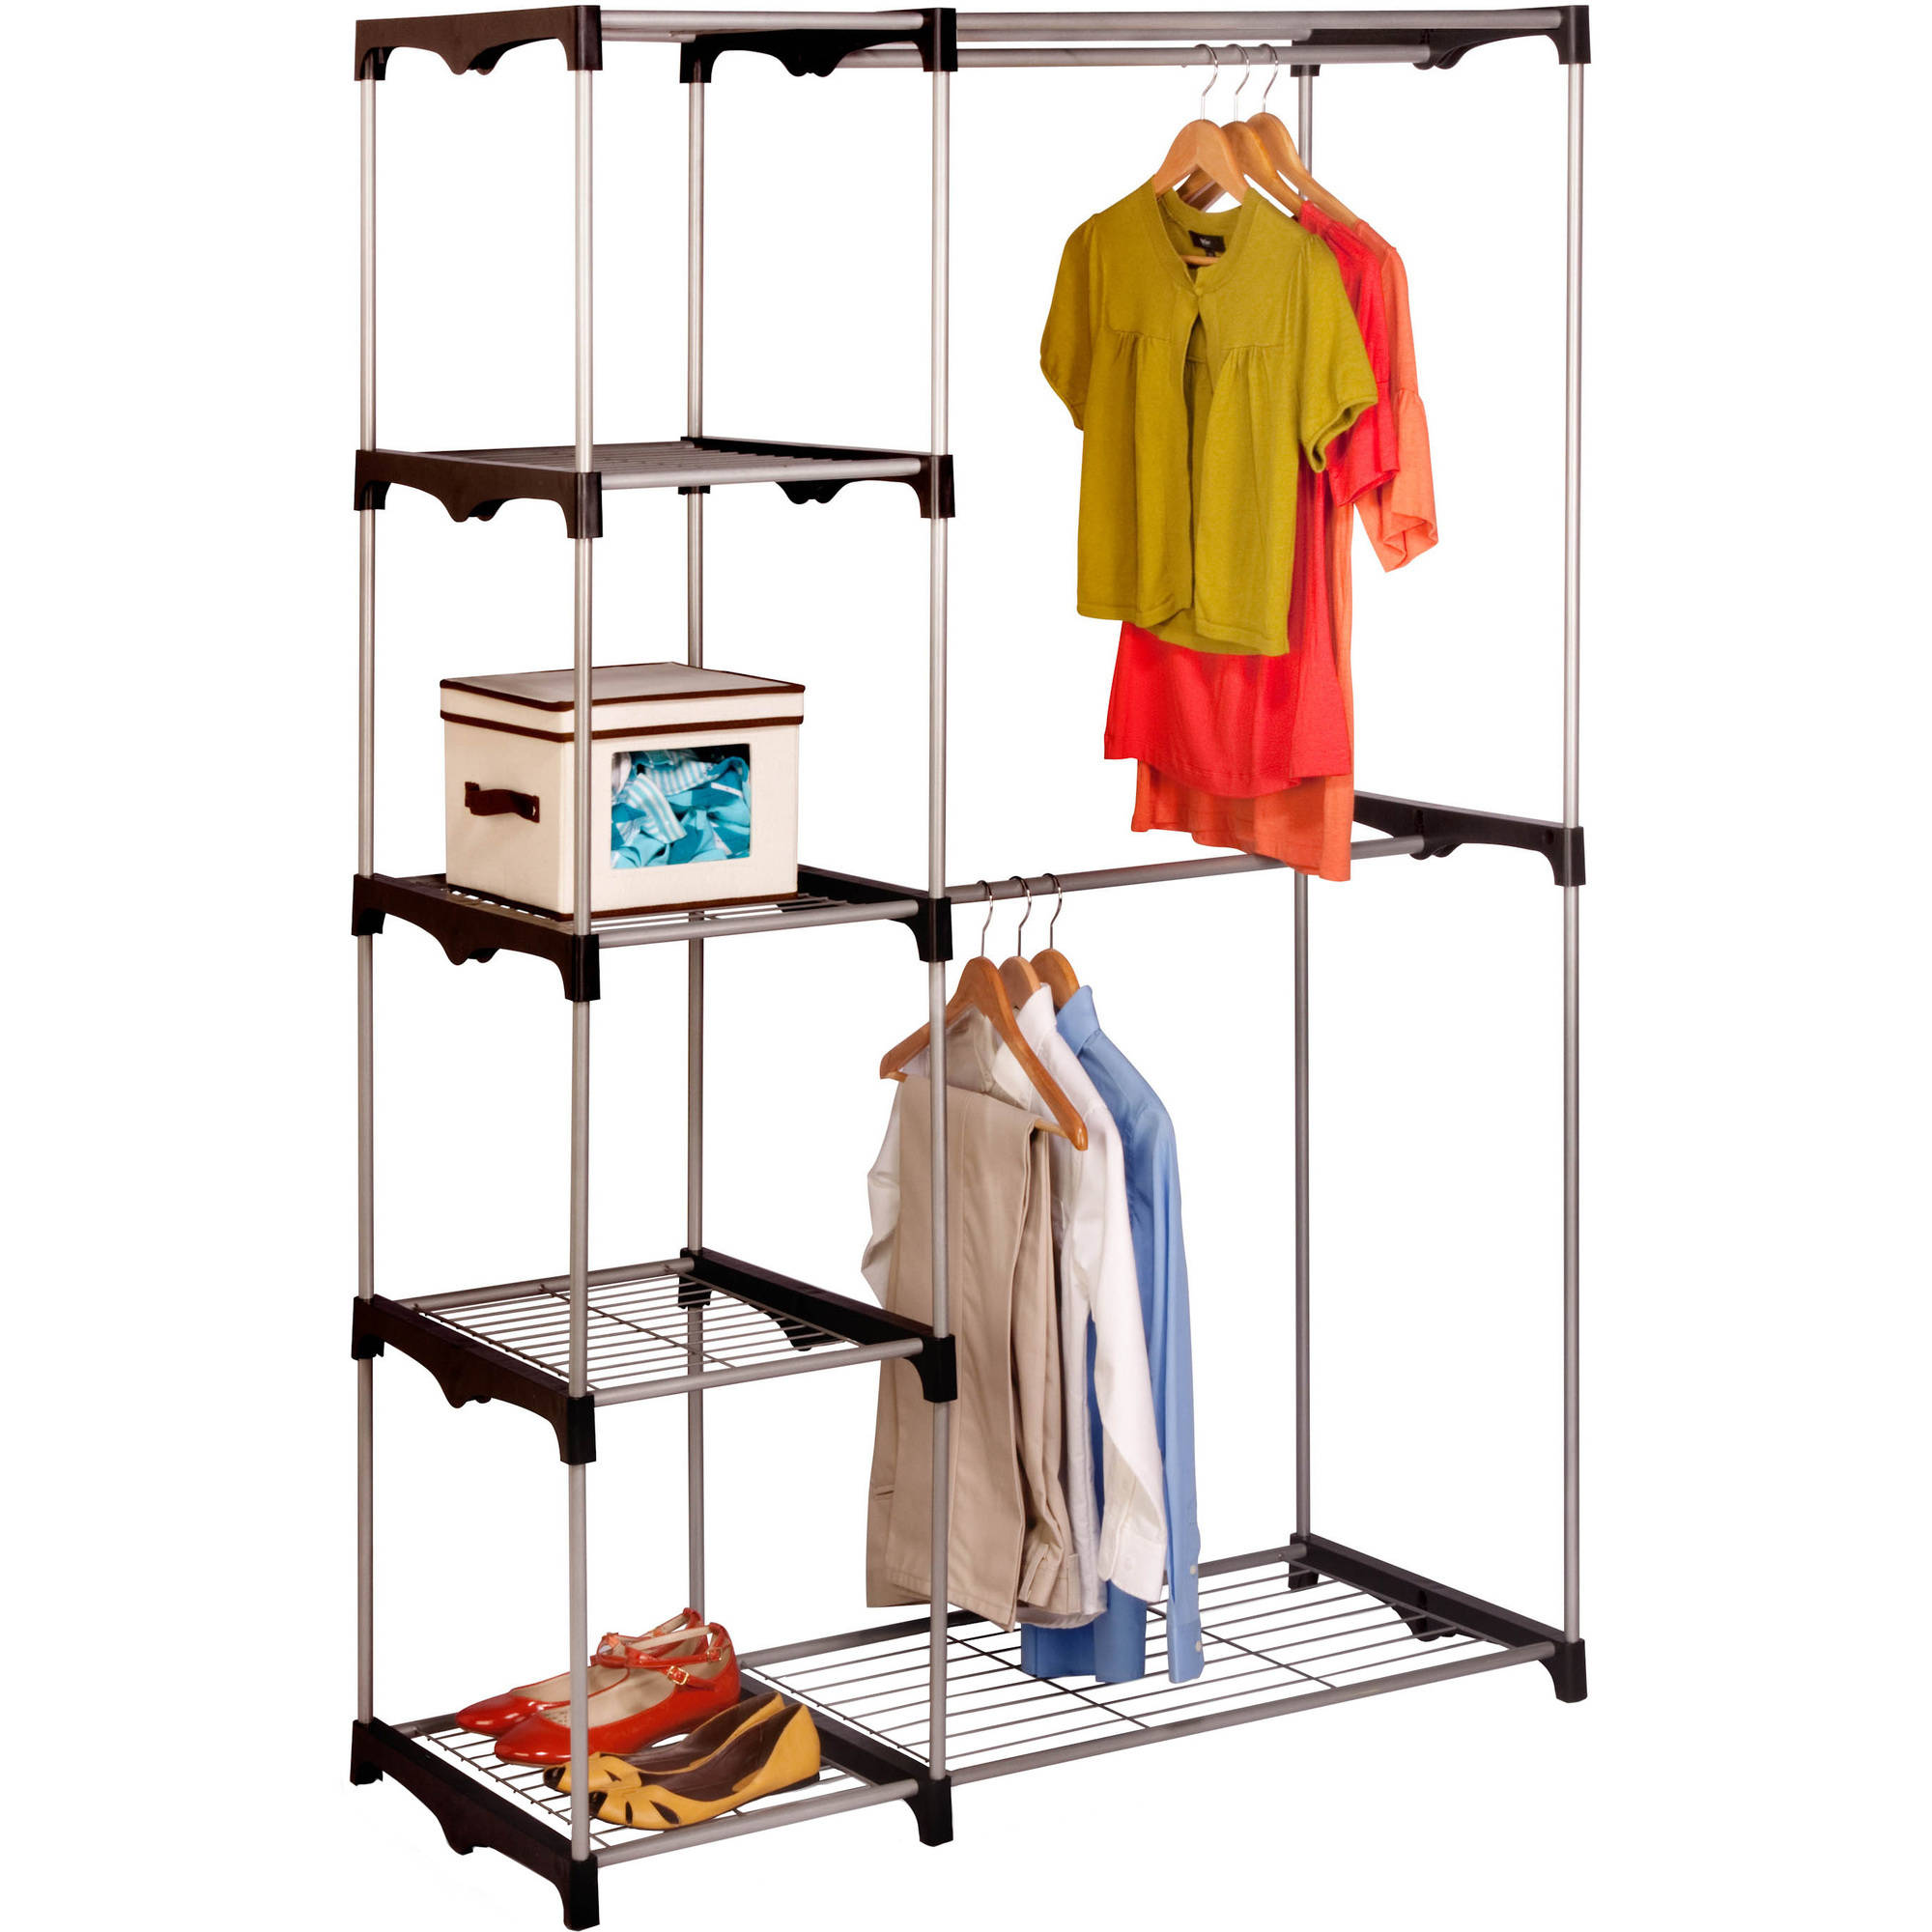 kits room your standing wood organizer cheap portible wardrobe closet for system bedroom wooden systems best cloth freestanding portable